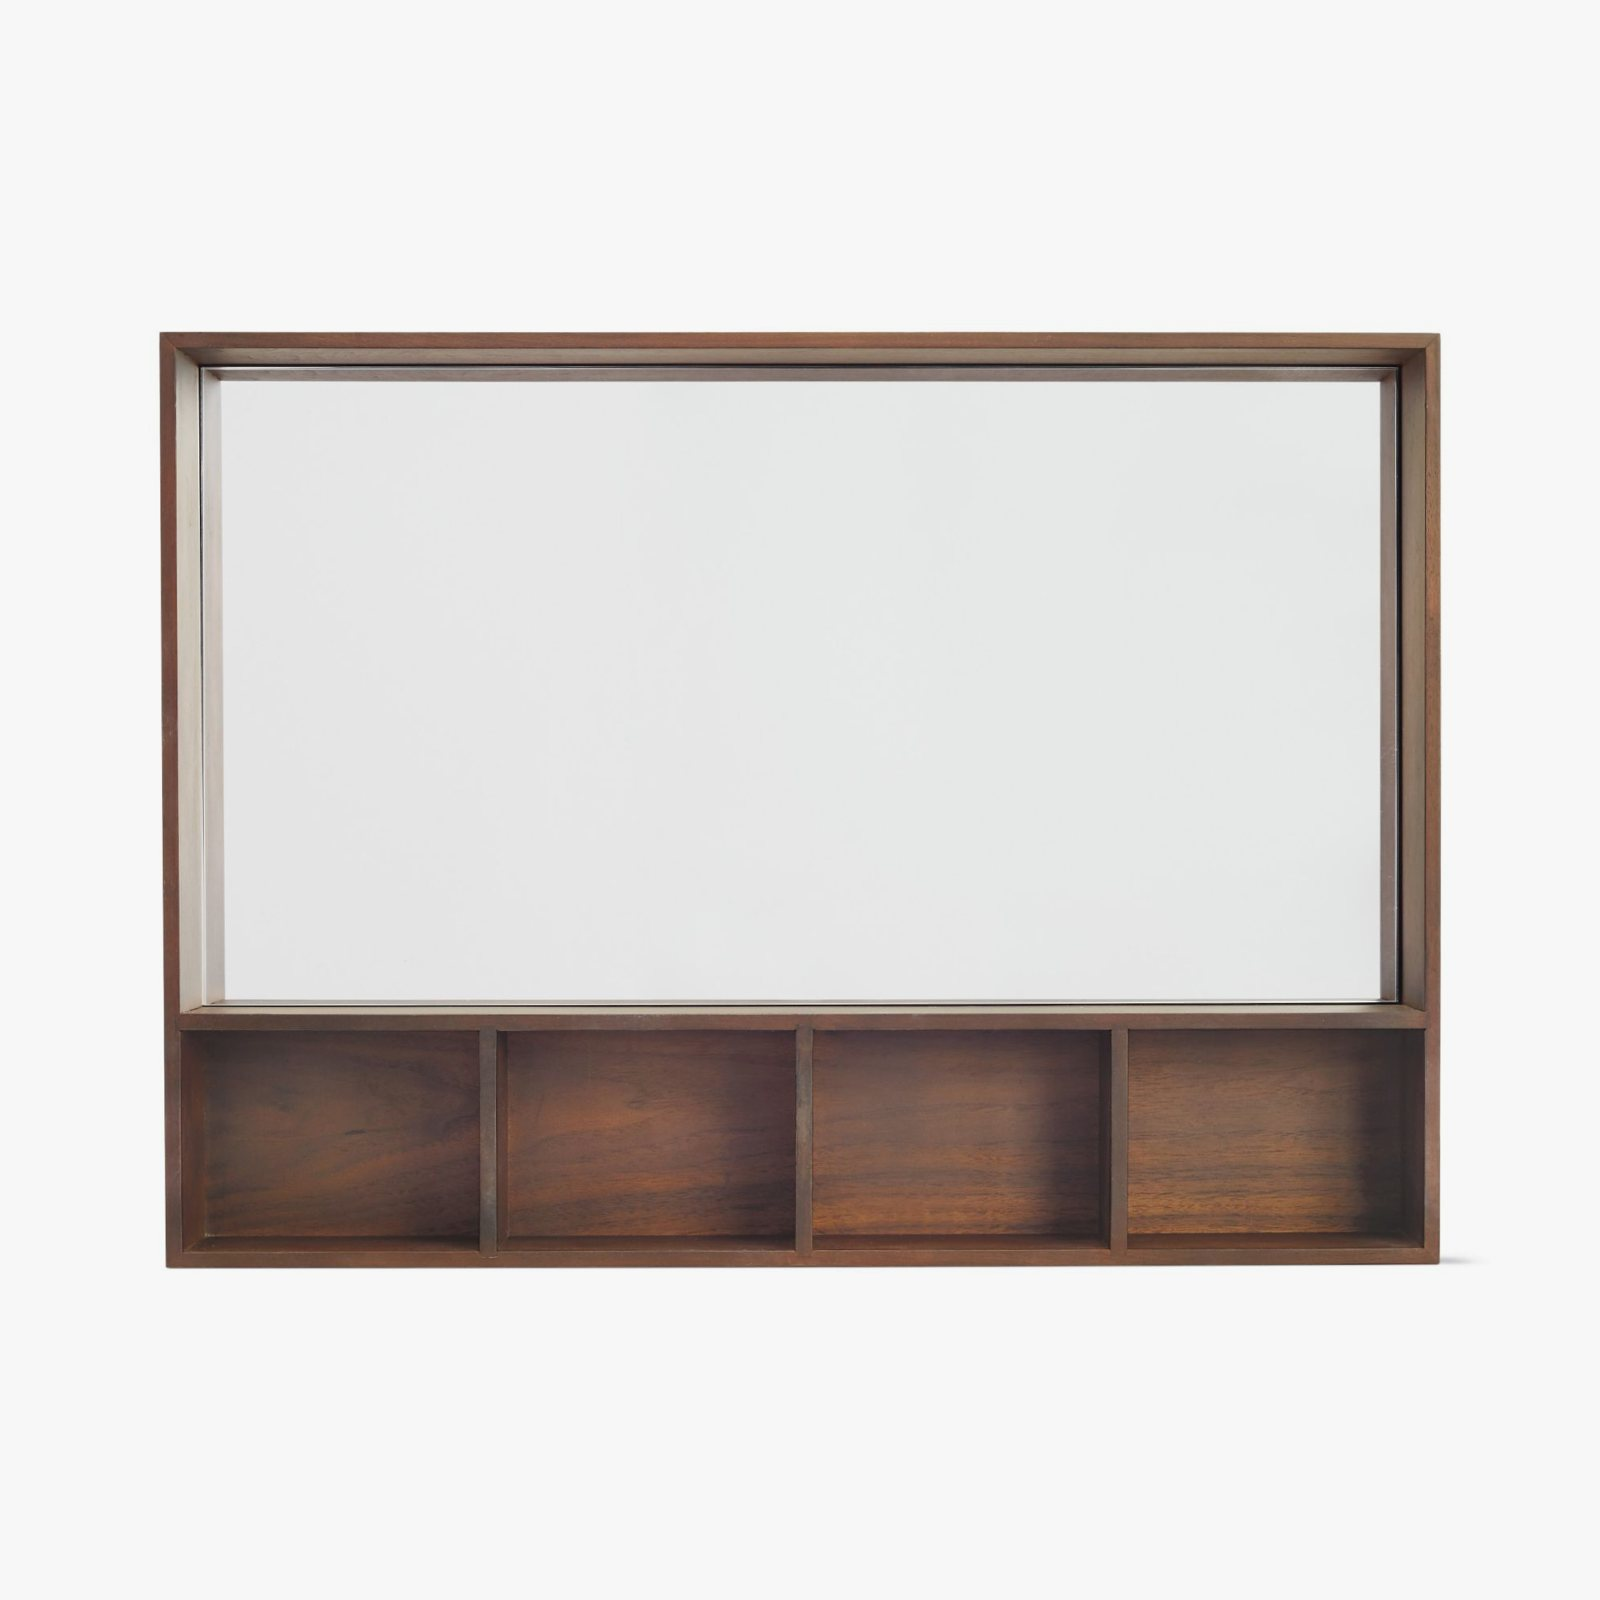 Arca Wall Box, Small By David Irwin For Case Furniture